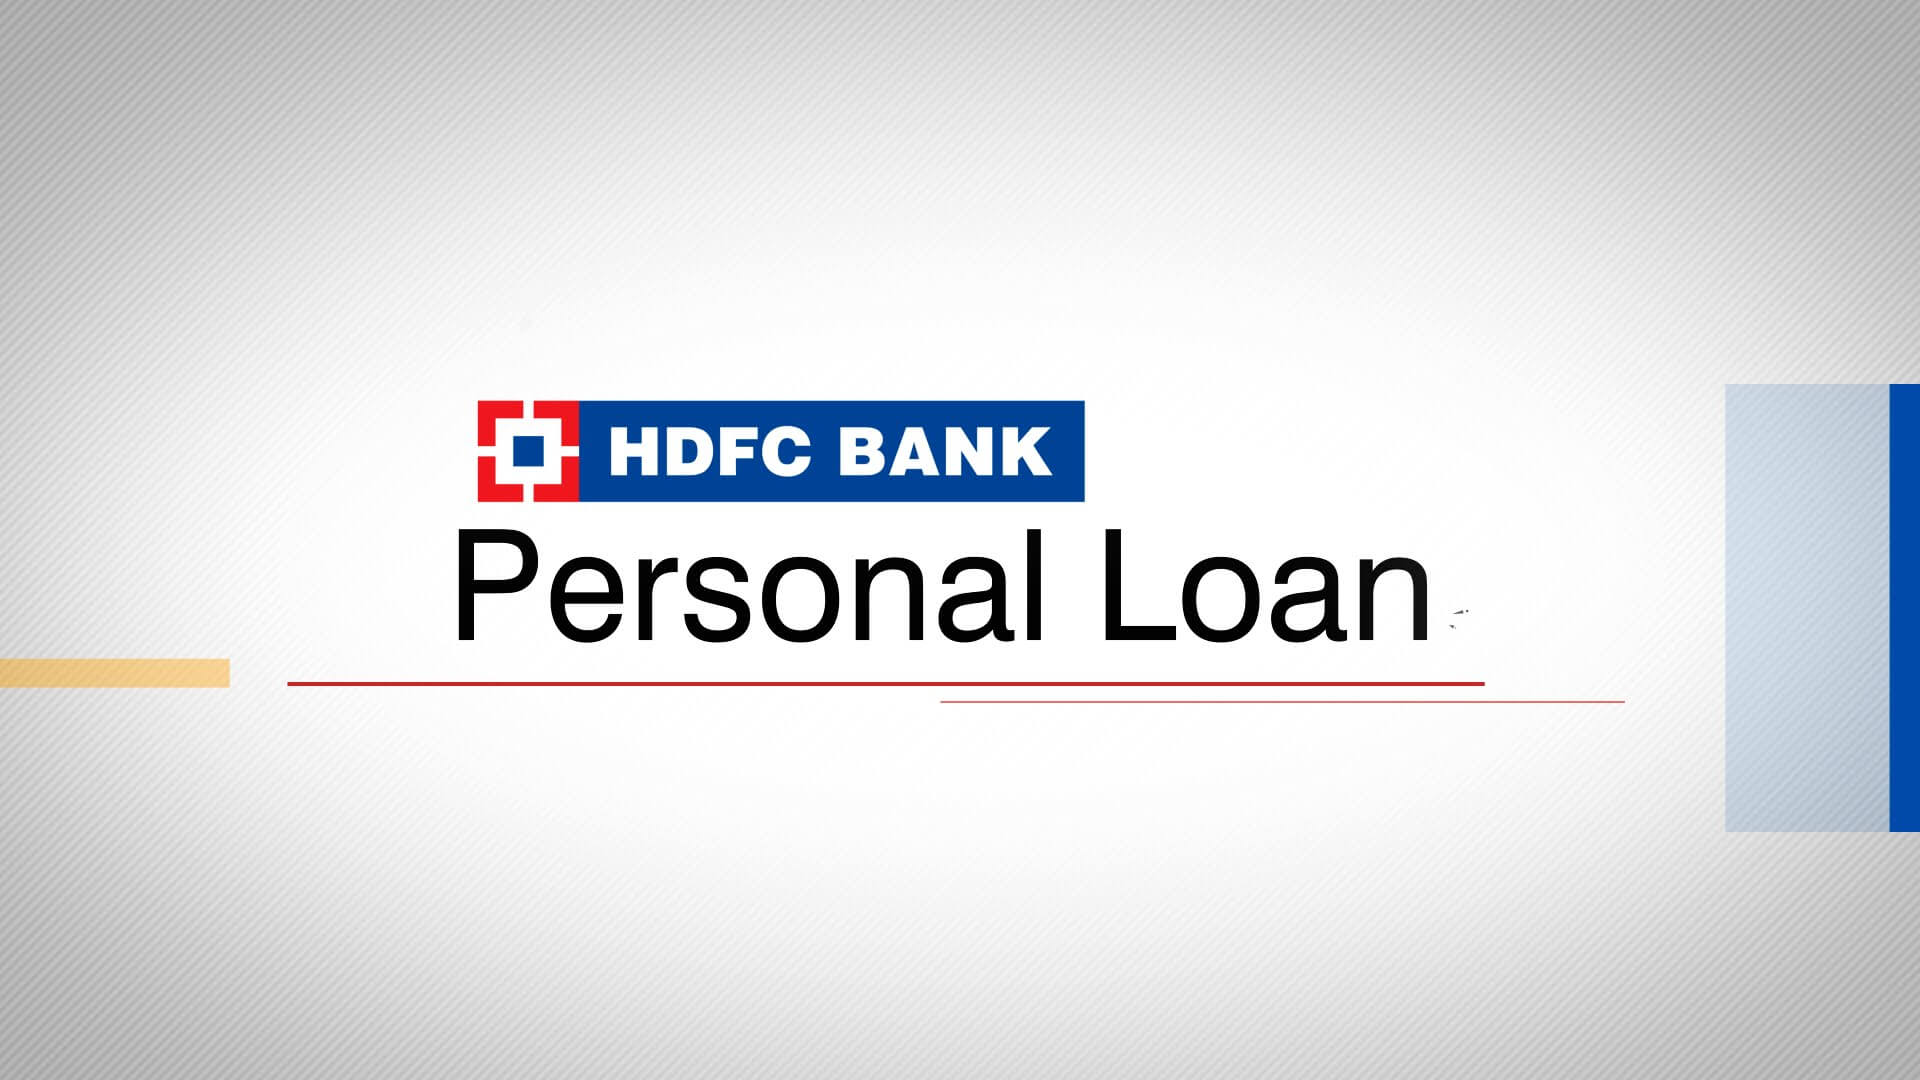 Best & Lowest Interest Rate HDFC Bank Personal Loan India, Delhi/NCR, Noida 2018